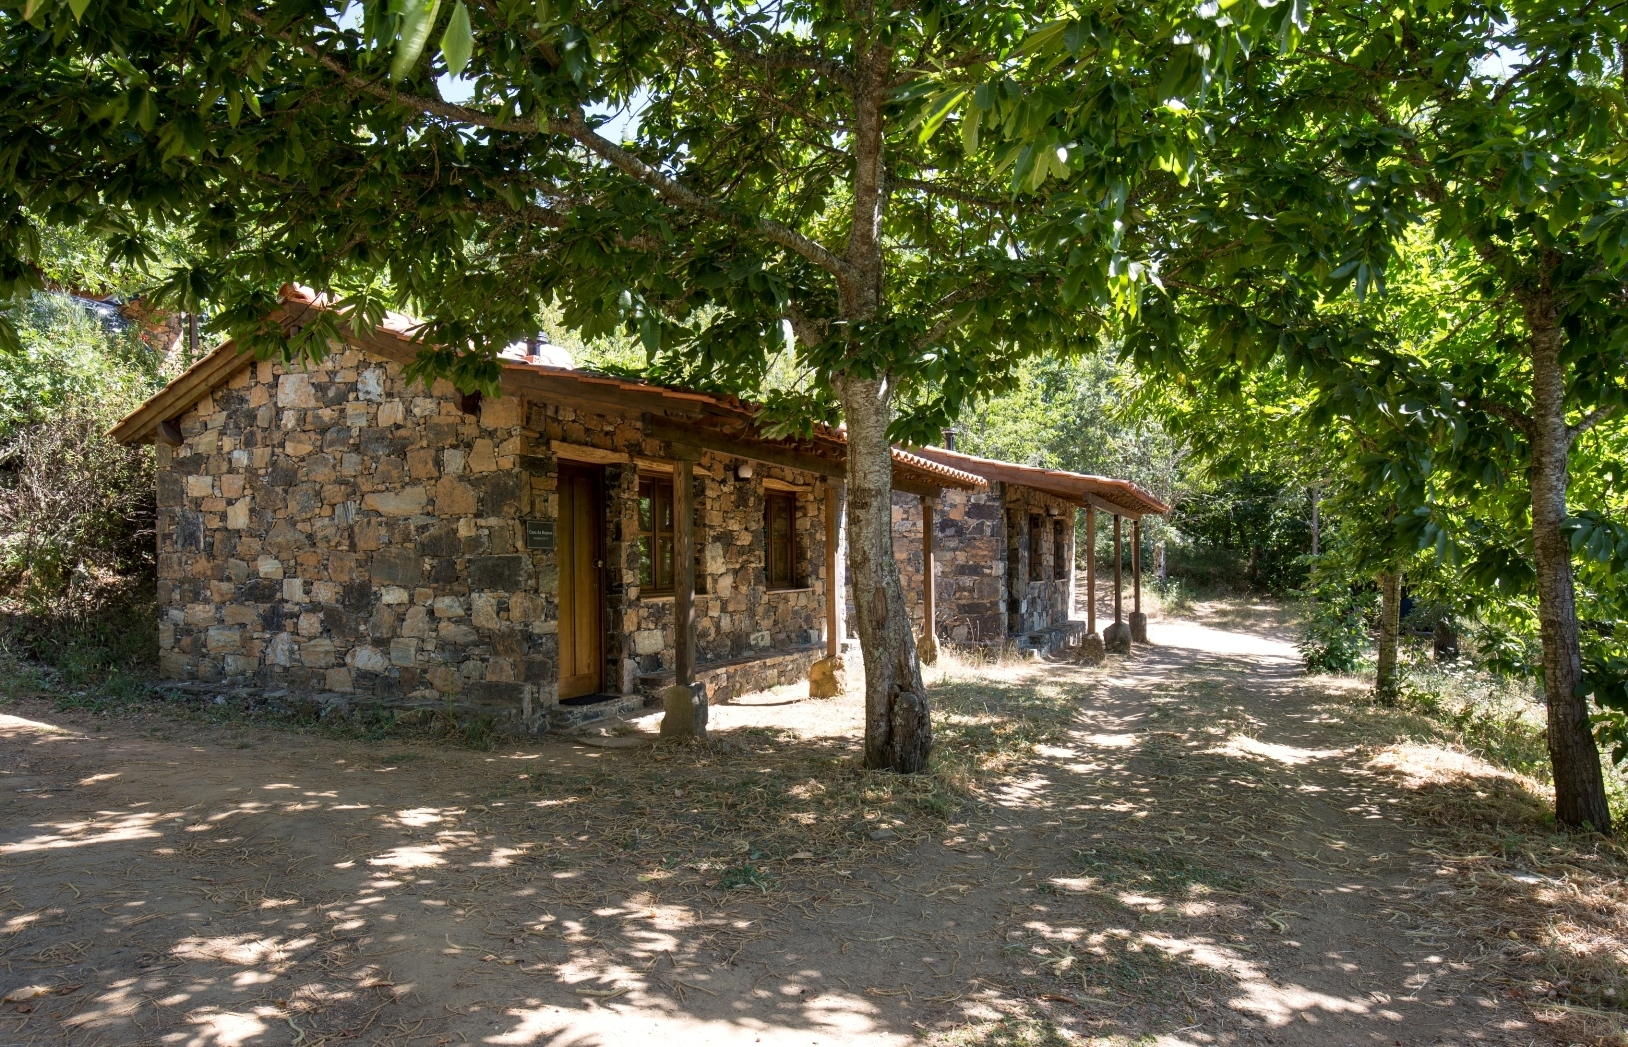 Portugal-Gondesende-Camping%20Cepo%20Verde-ExtraLarge Campings Portugal